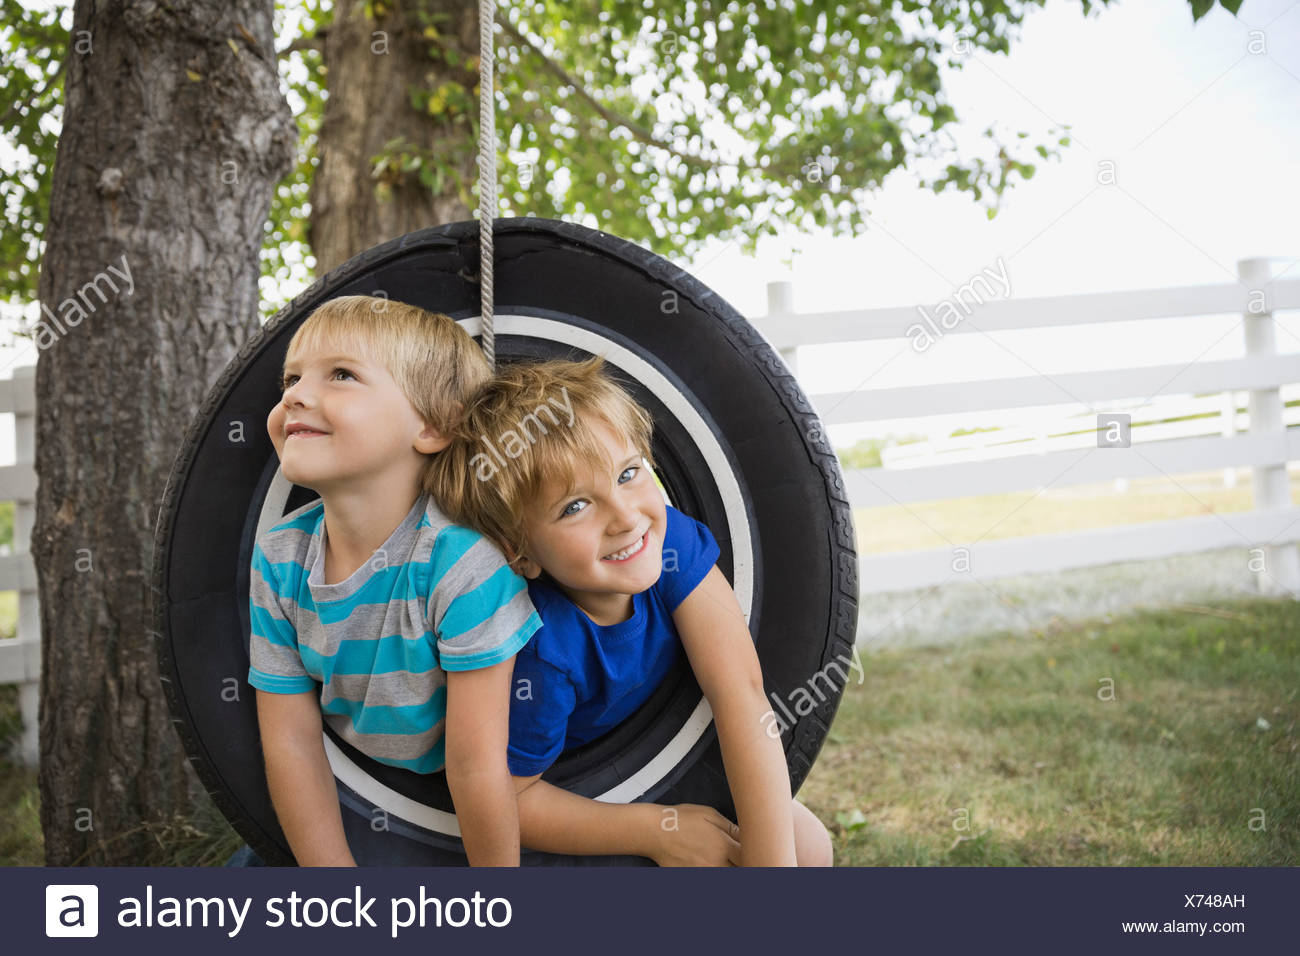 Playful boys on a tire swing Stock Photo